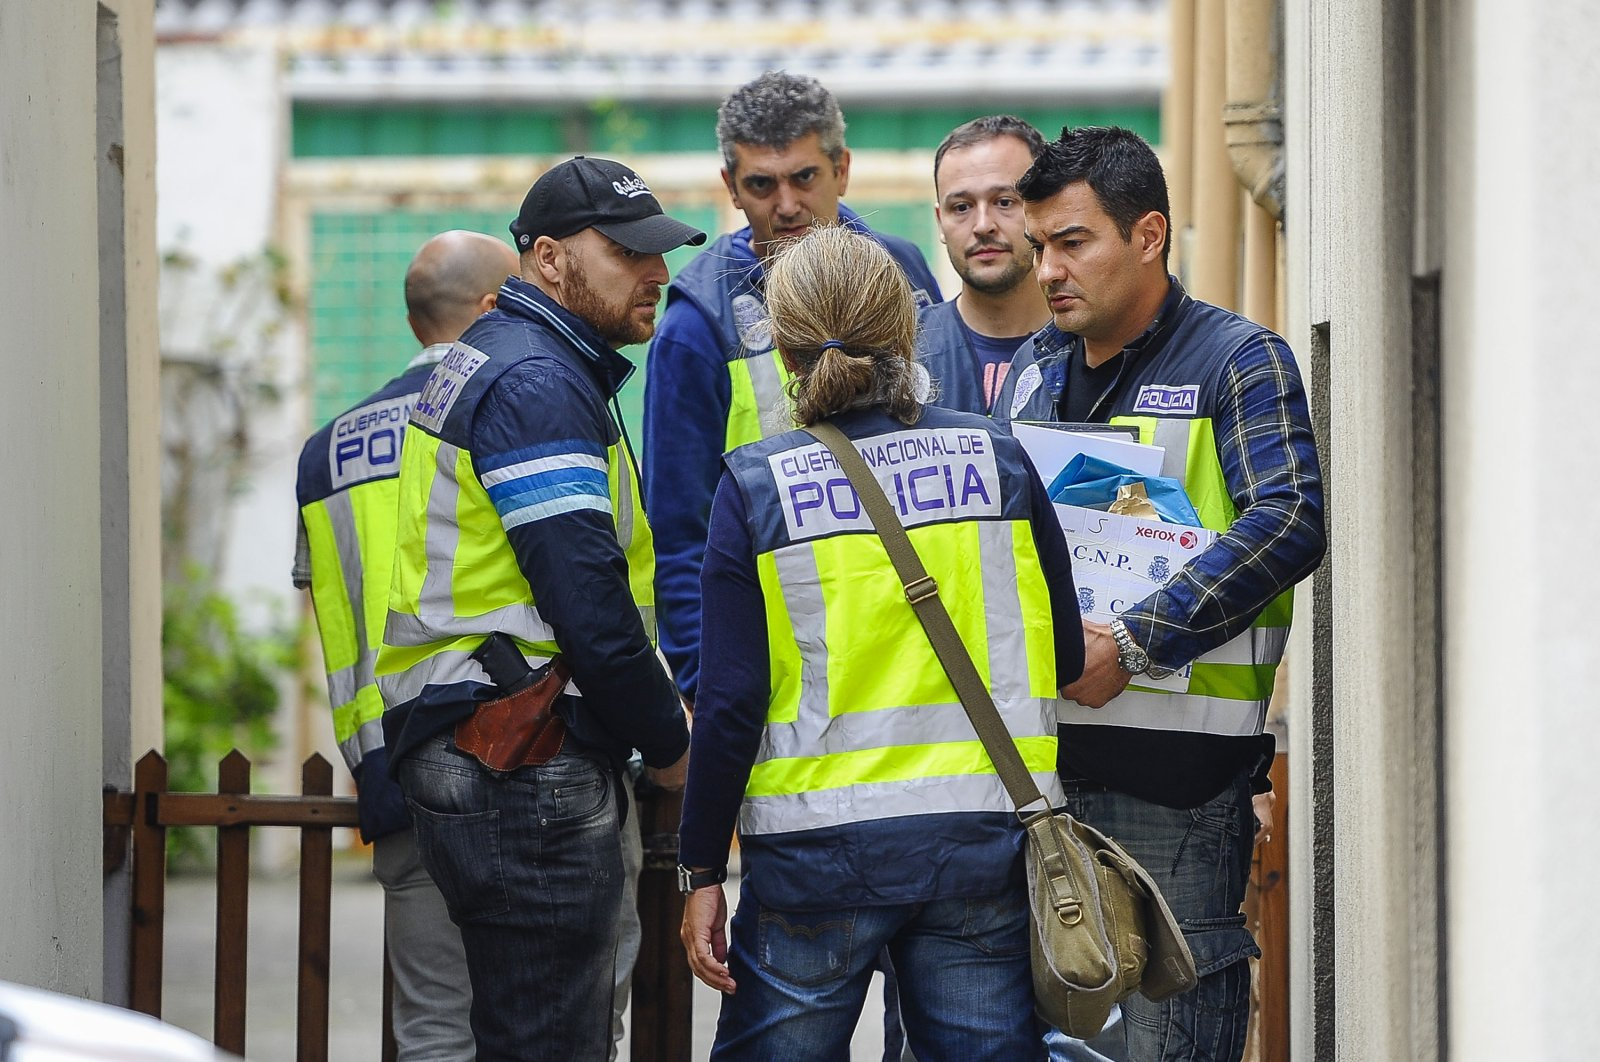 Police enter the house of an alleged pedophile believed to have kidnapped and abused five children in Madrid, in Santander, Spain, Sept. 24, 2014. (Getty Images)